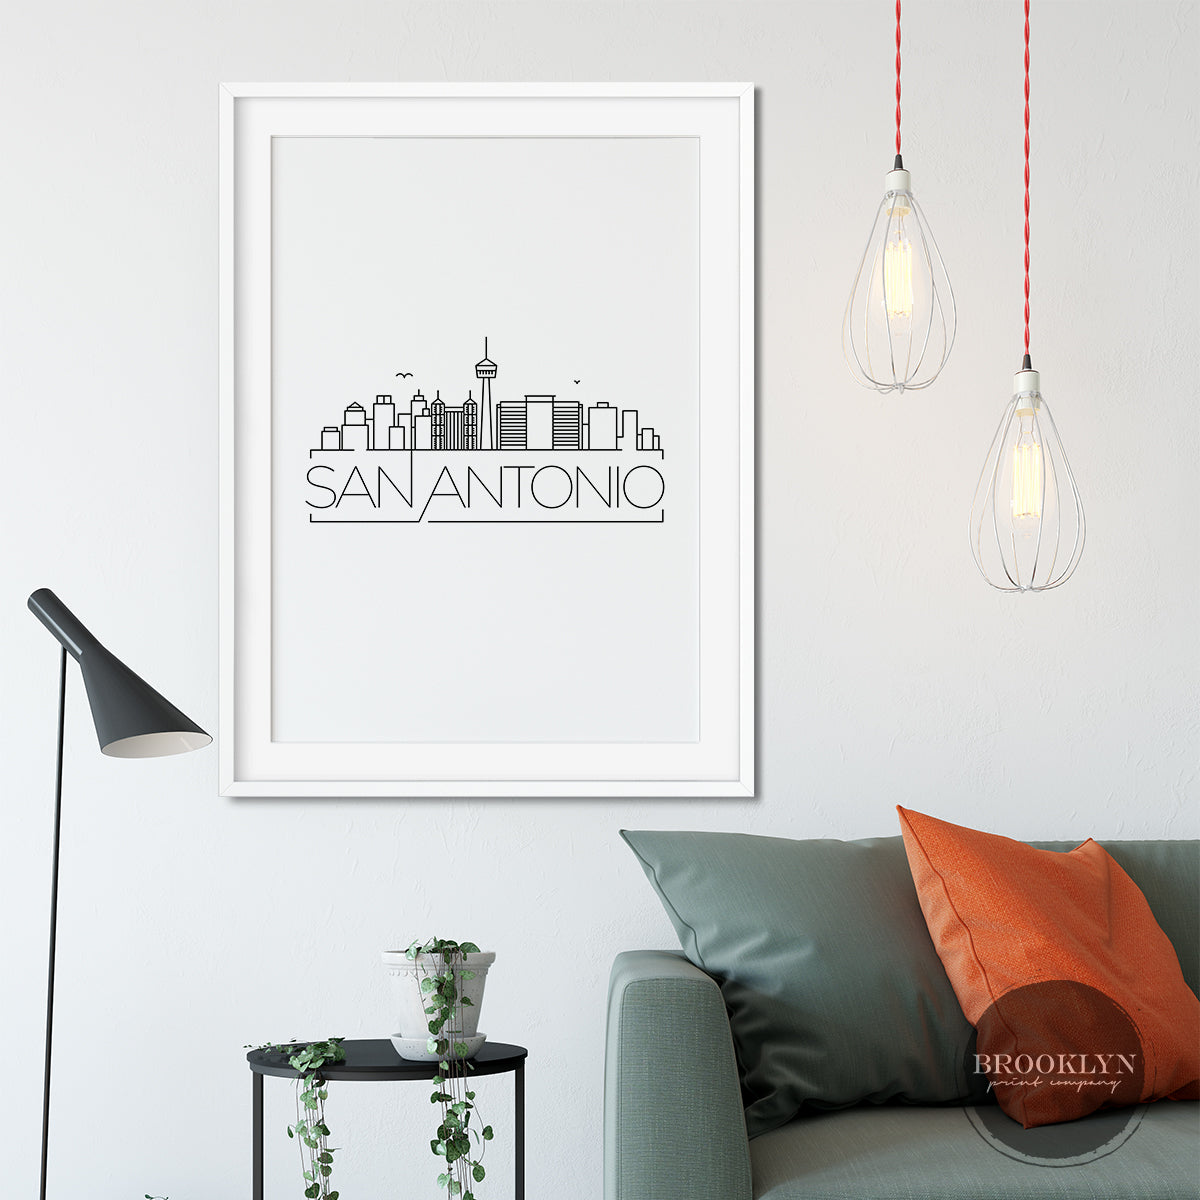 San Antonio City Skyline Travel Poster Art Print - VIVIDEDITIONS